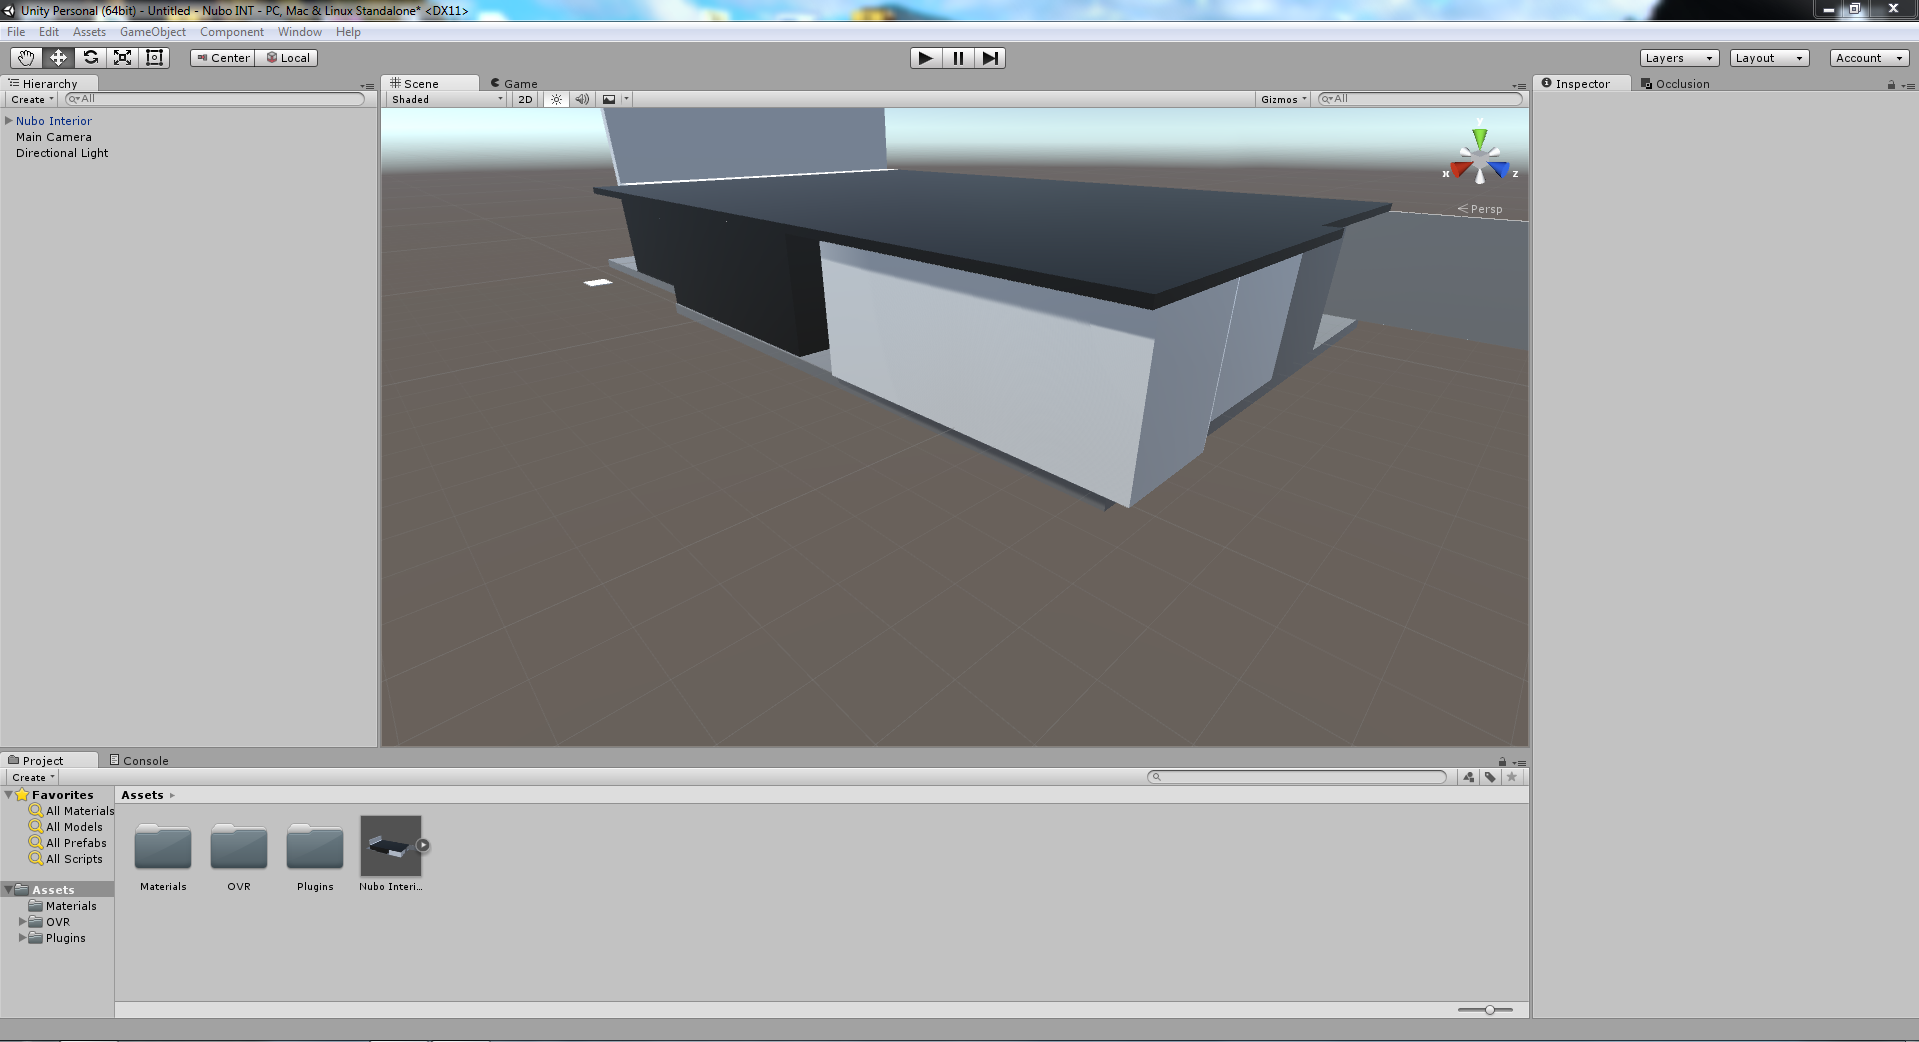 Virtual Reality Know-How: Bringing a Sketchup Model Into the